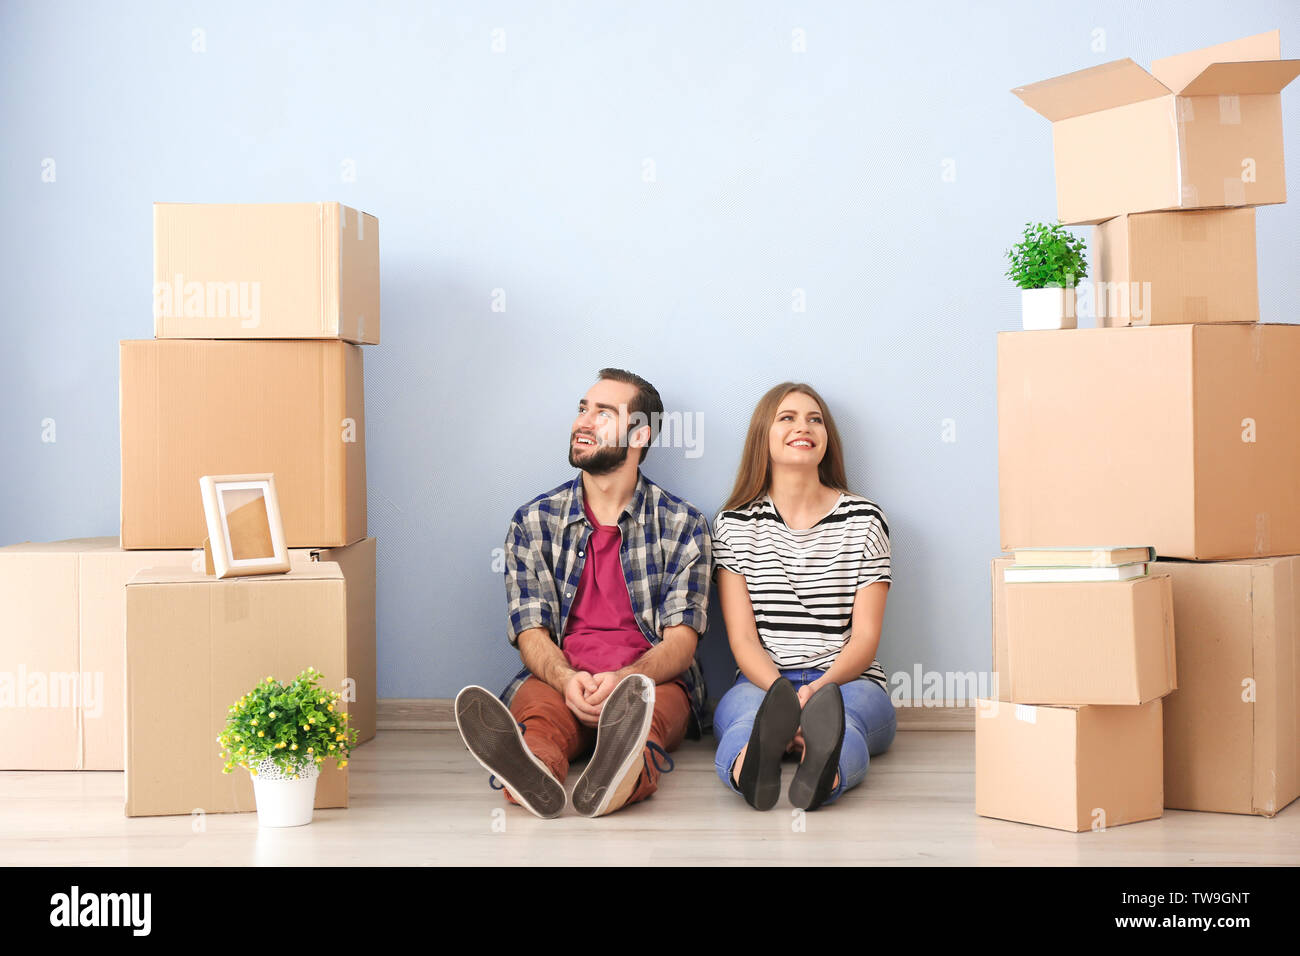 Young couple with moving boxes on floor in room - Stock Image